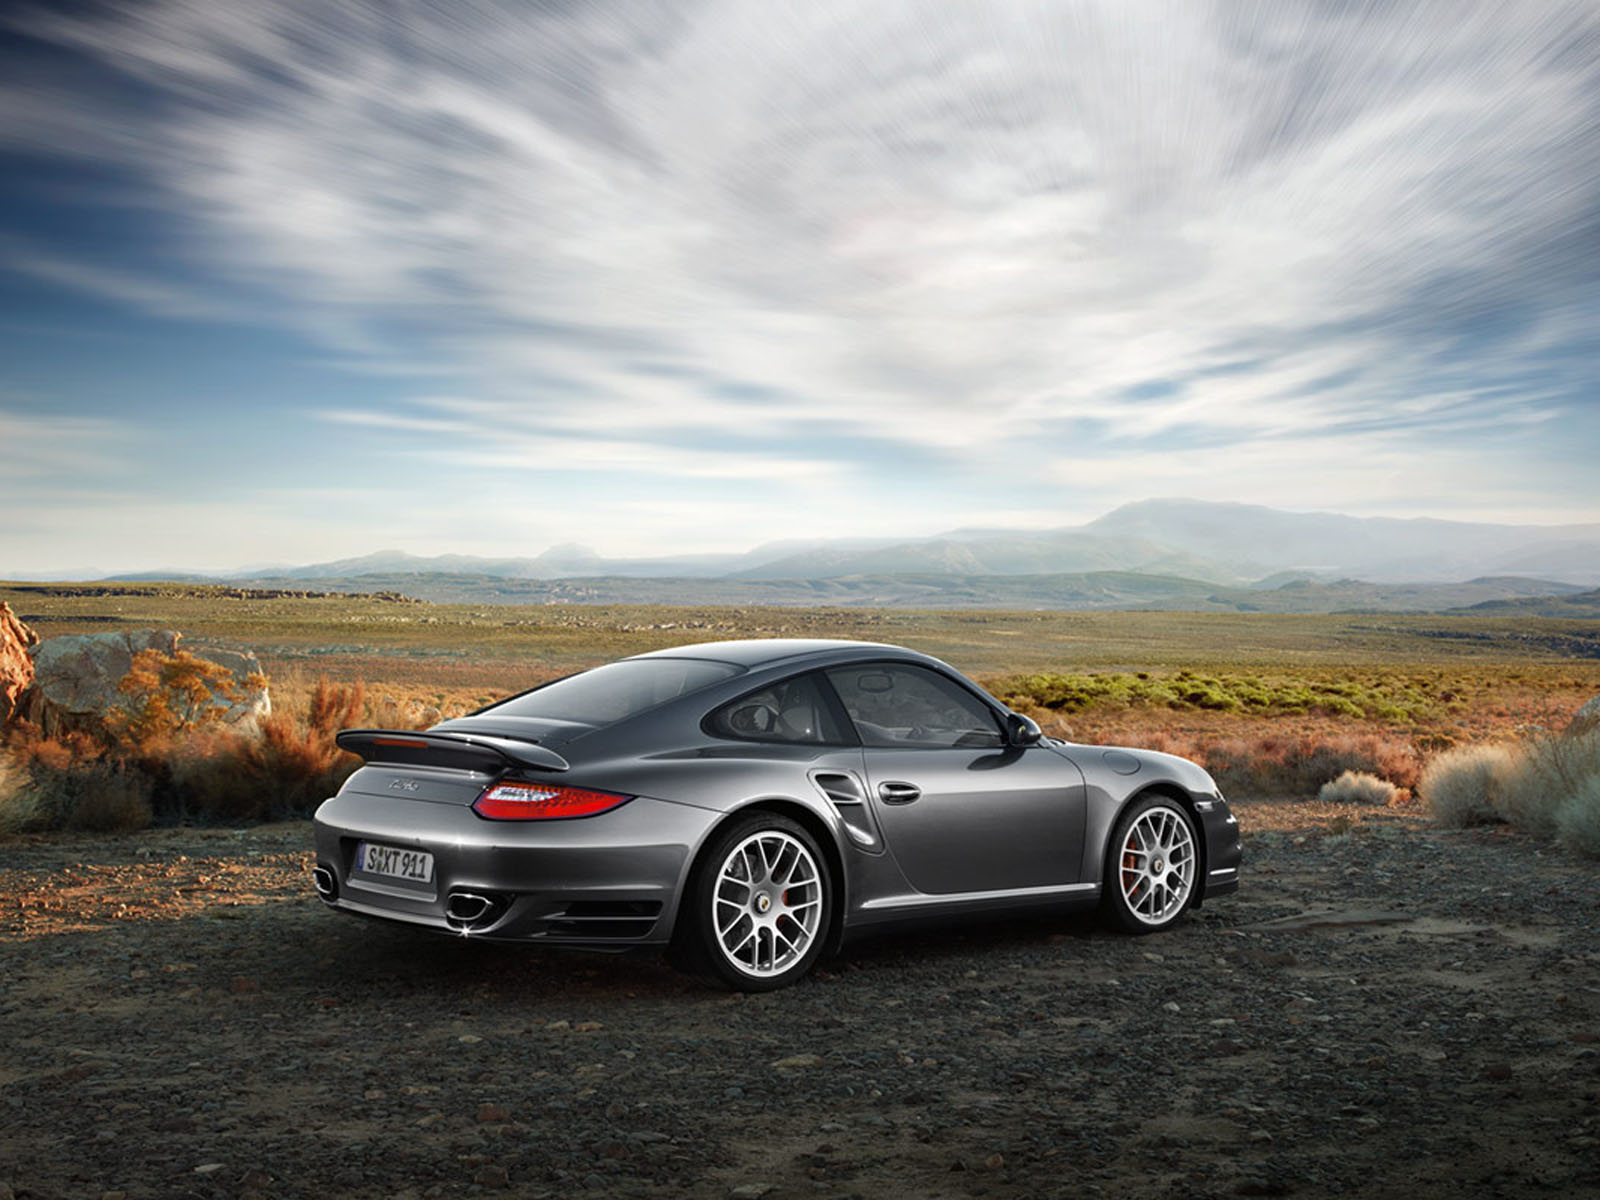 Tag Porsche 911 Turbo Car Wallpapers Backgrounds PhotosImages and 1600x1200